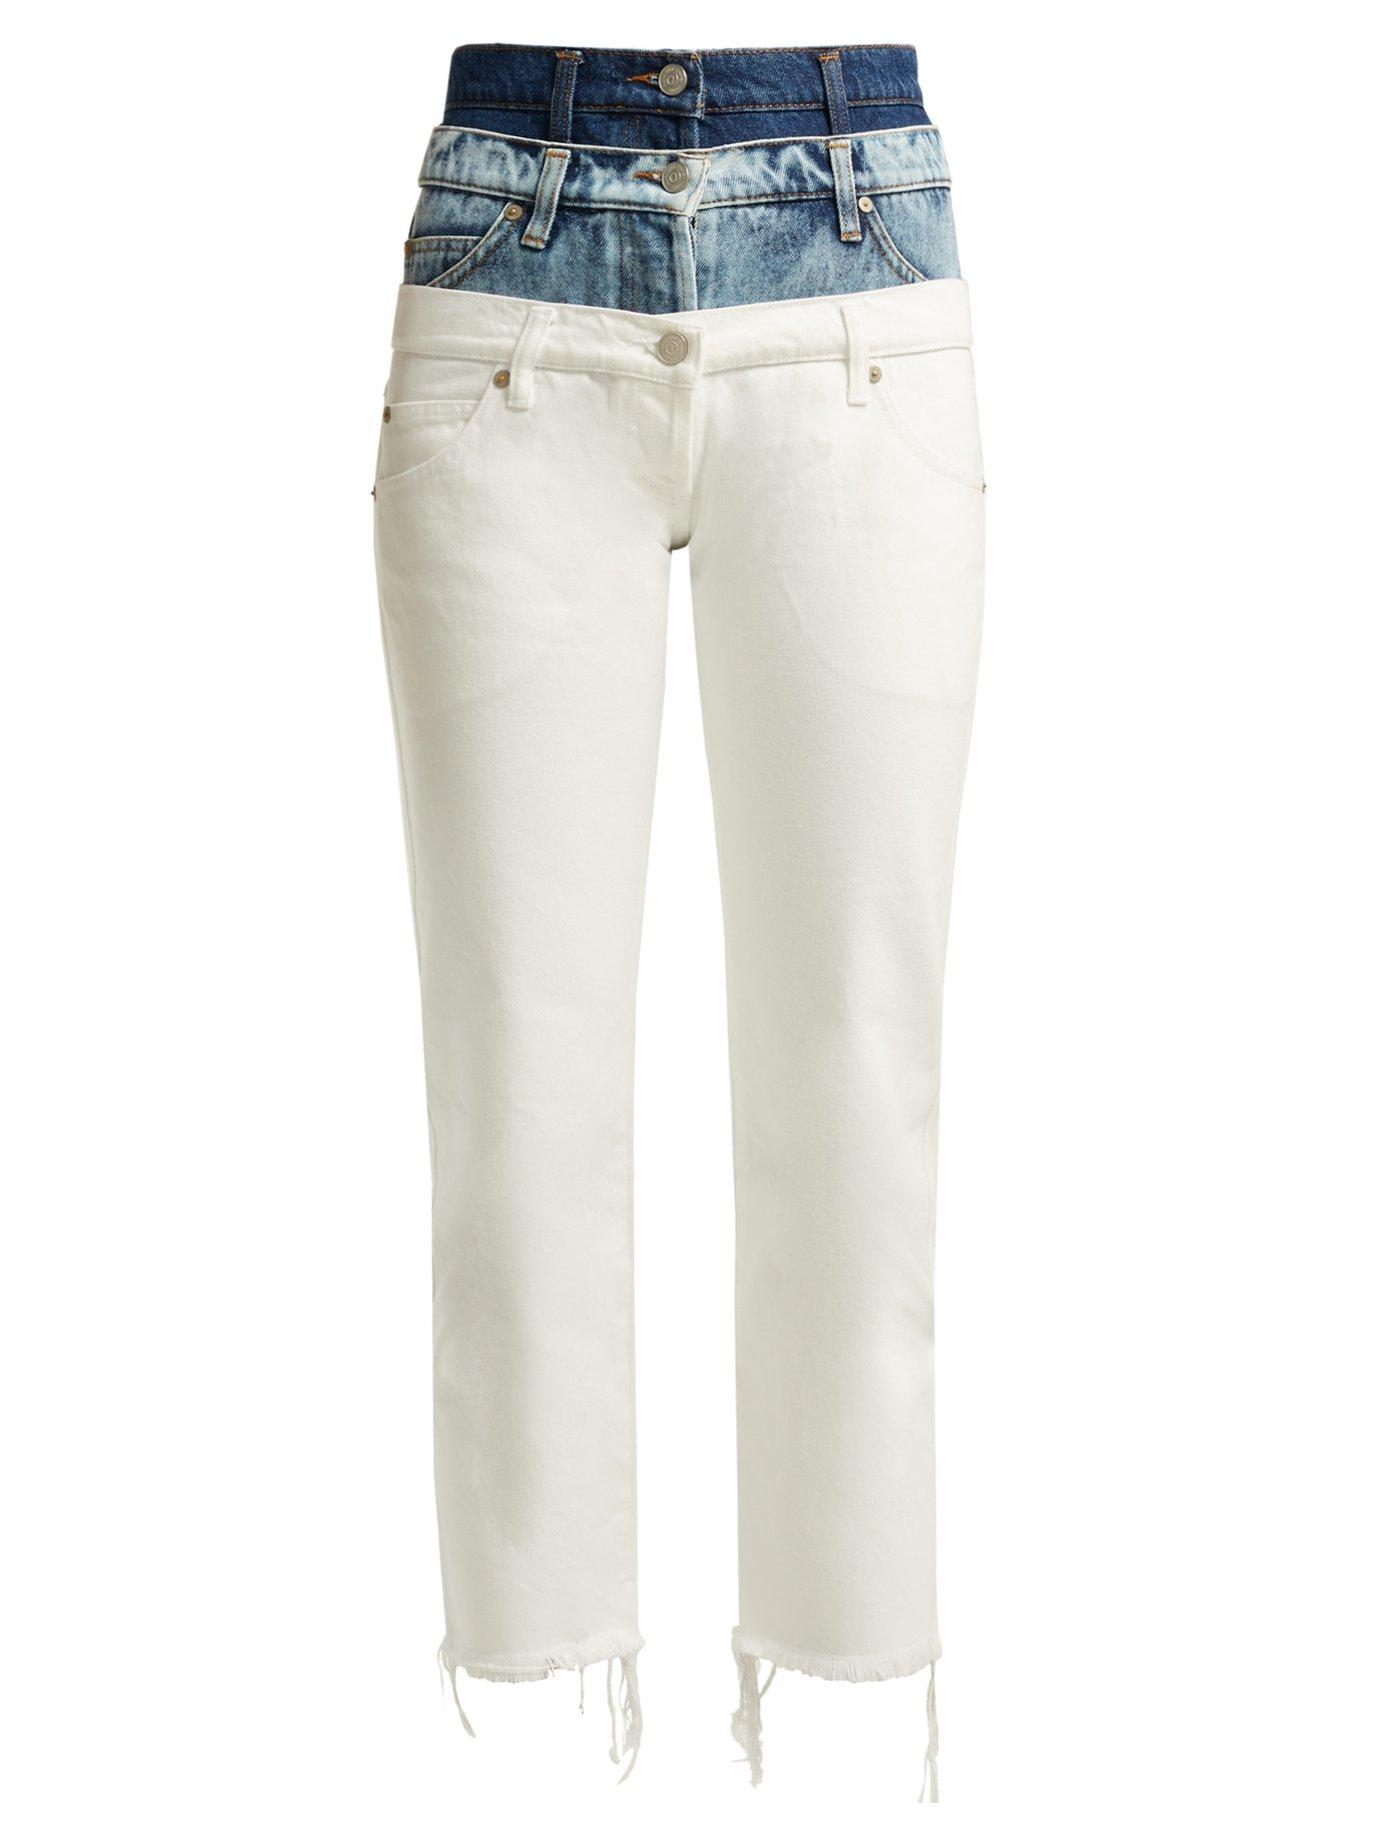 Natasha Zinko Triple Waistband Slim-fit Cotton Jeans In White